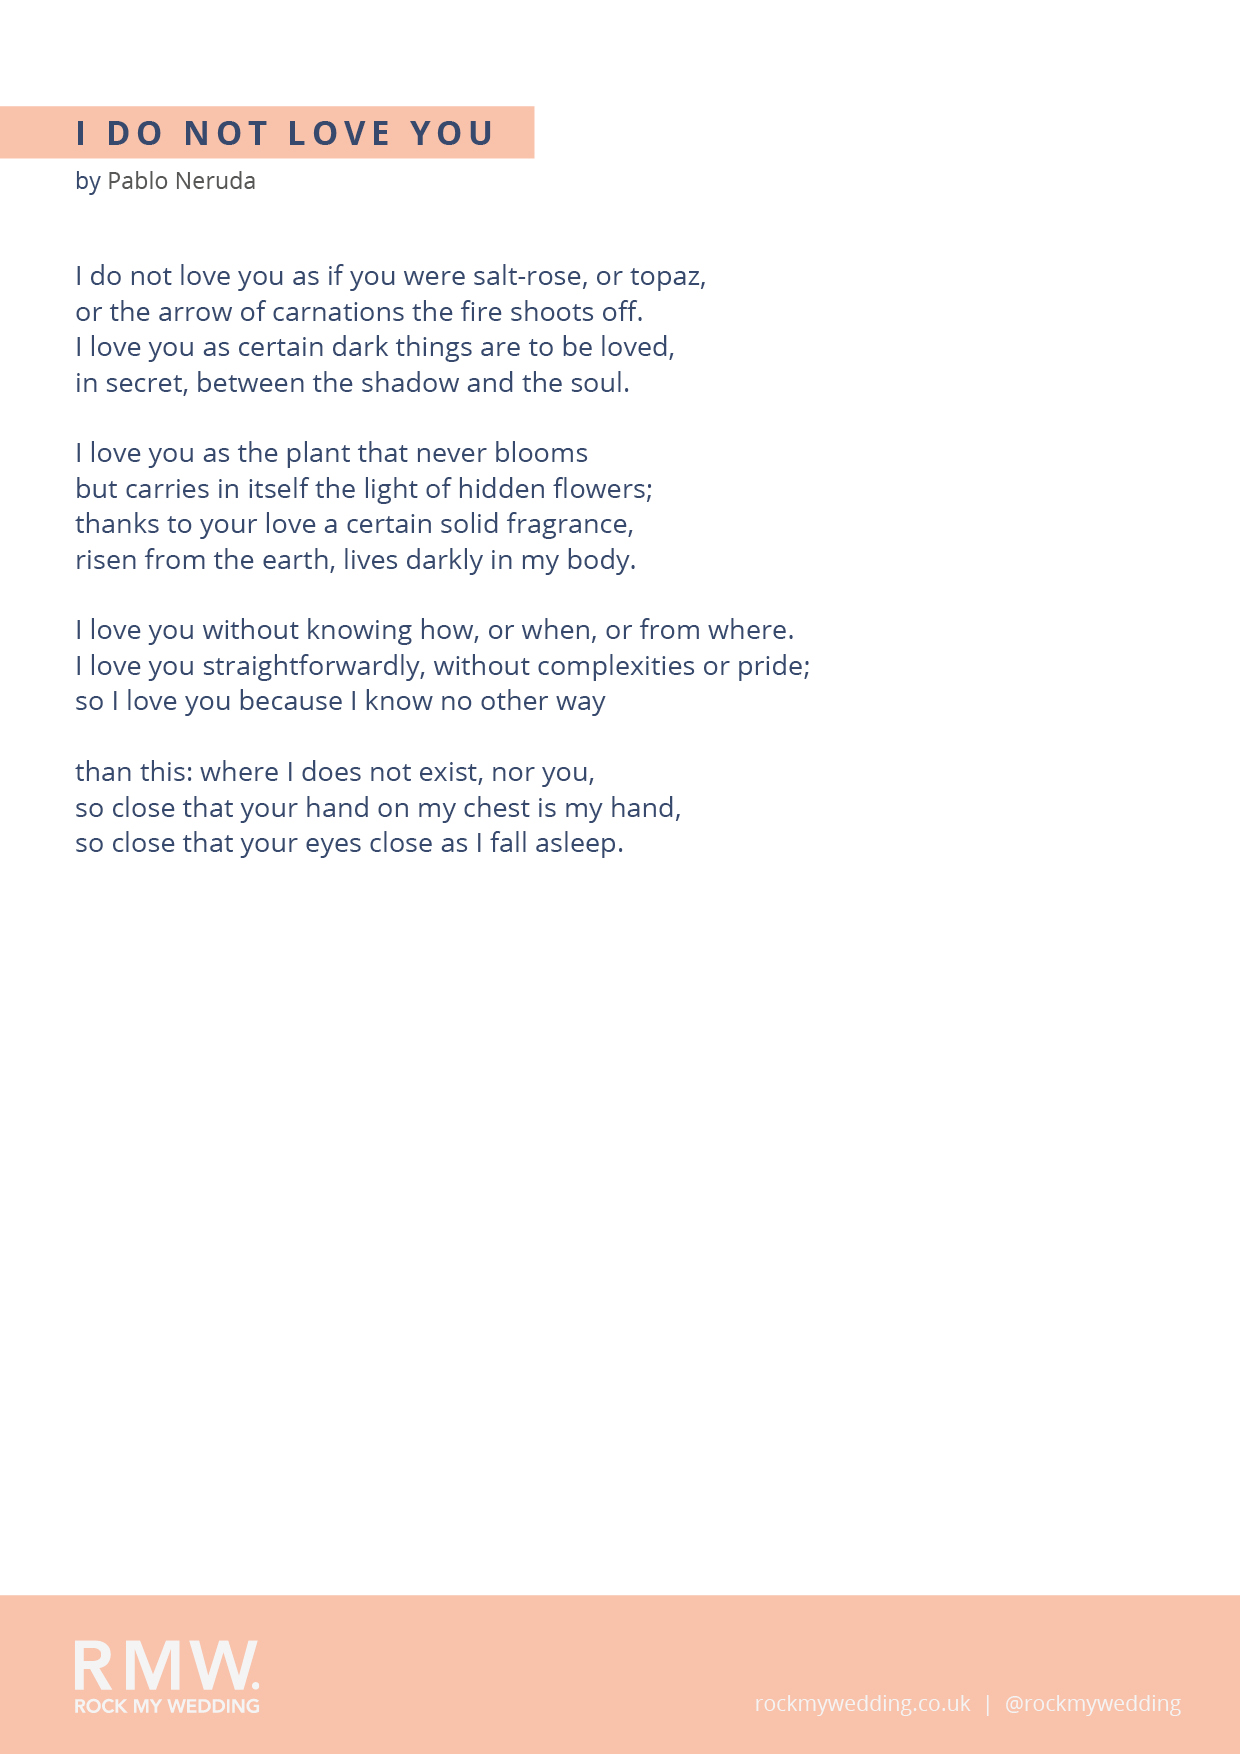 I Do Not Love You by Pablo Neruda - Wedding Readings